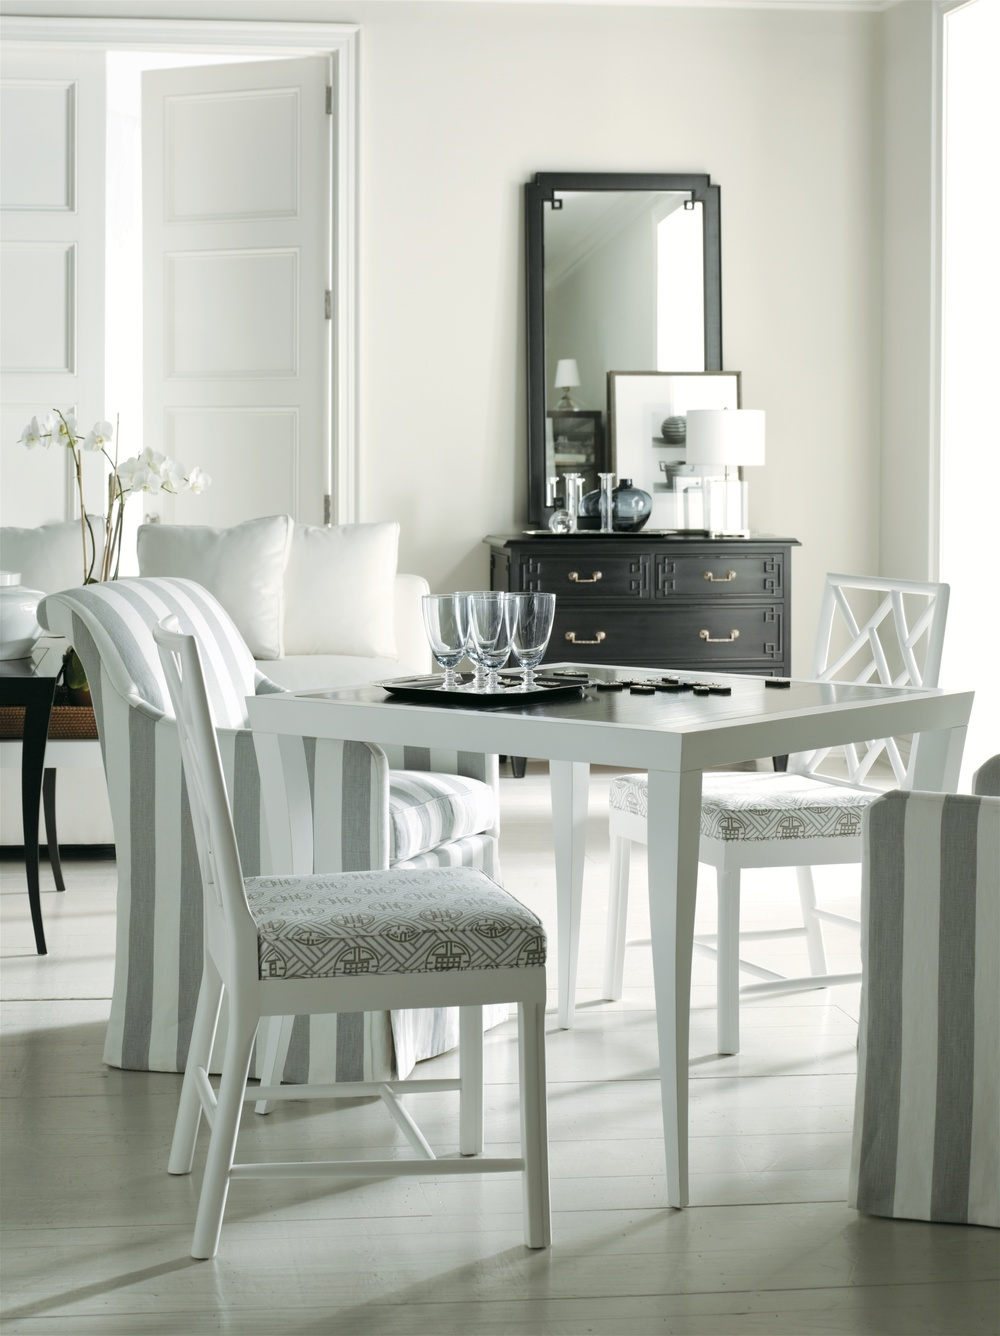 Hickory Chair - Lindsay Chair with Casters